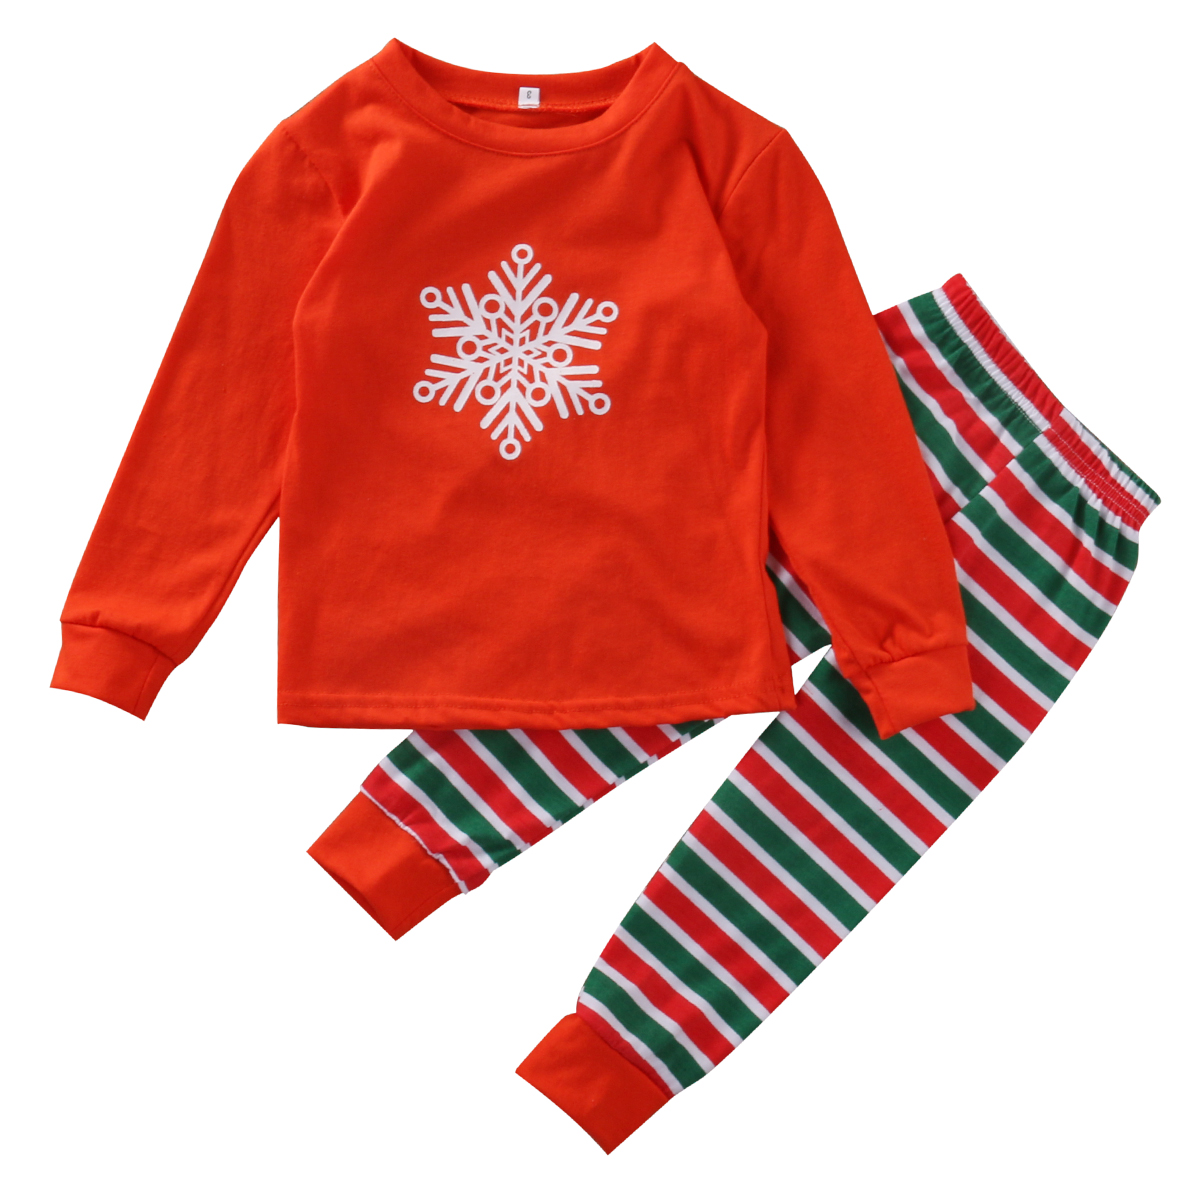 Christmas Family Matching Pajamas Children Adult Sleepwear Nightwear Pyjamas Set